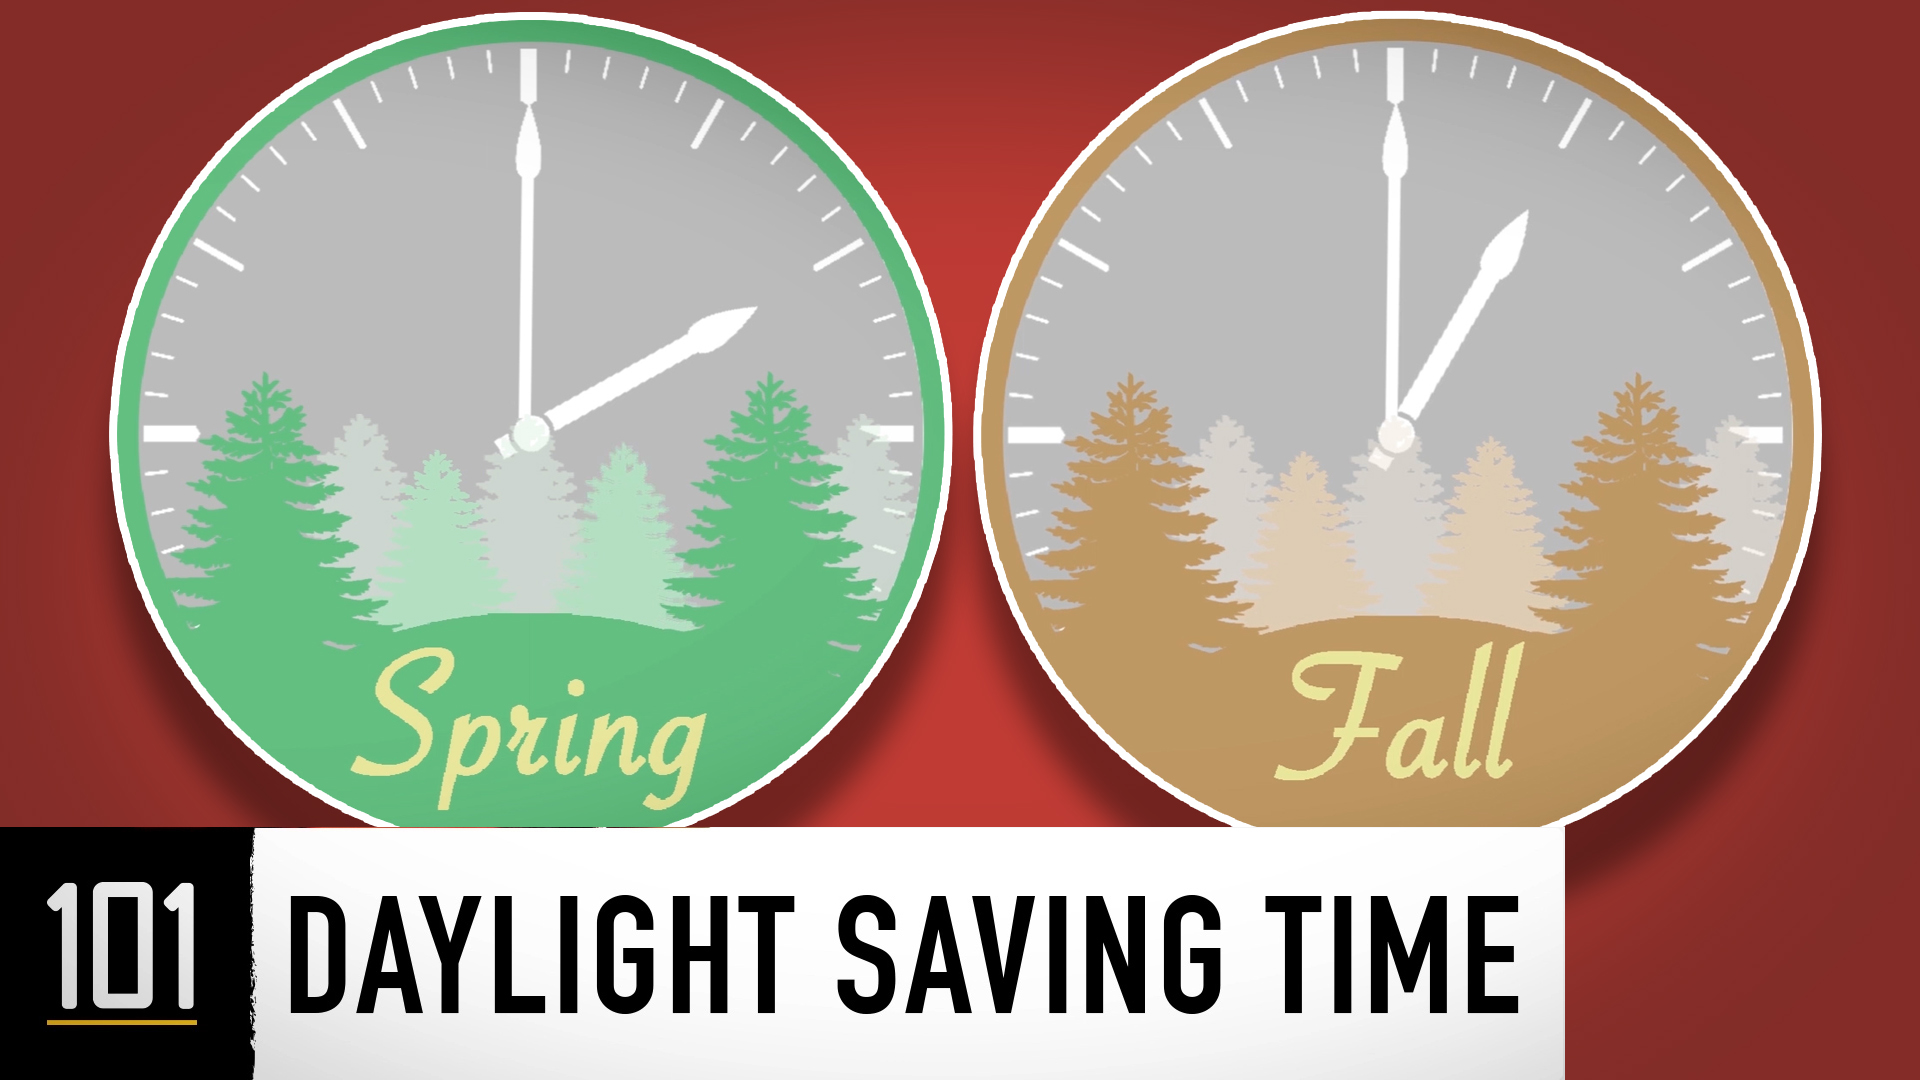 Day lite saving time